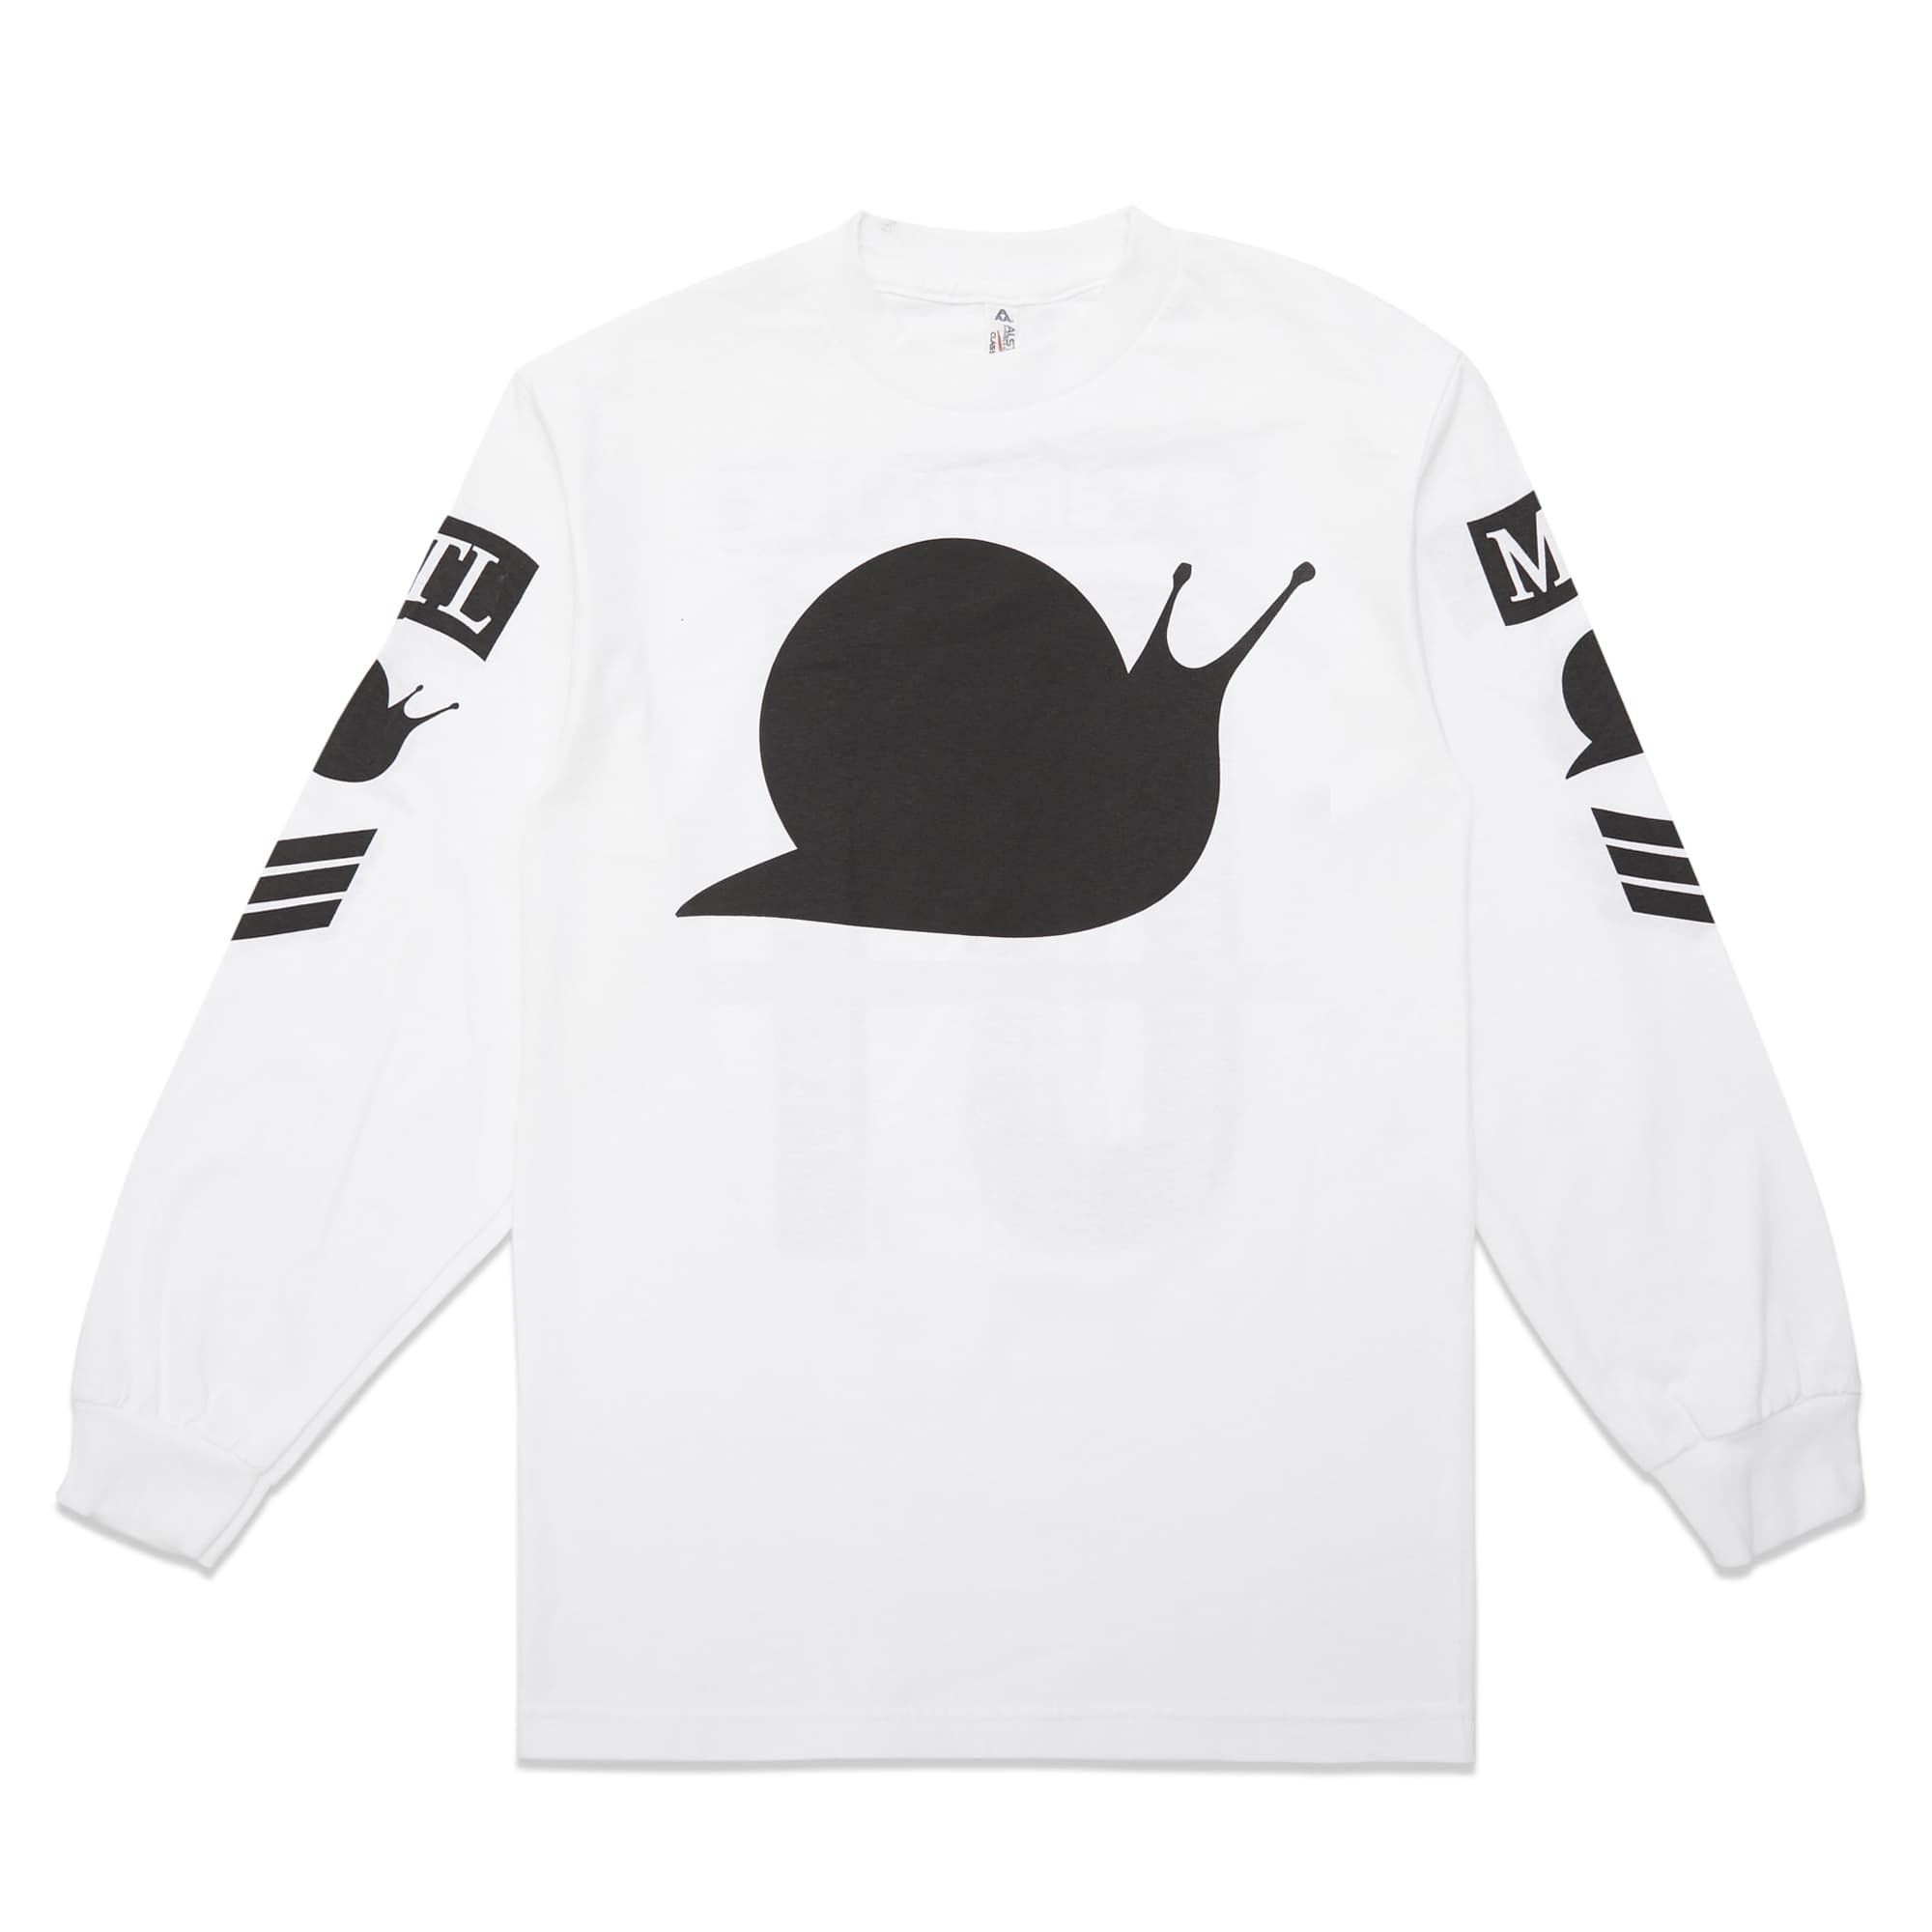 'VomitStep' Long Sleeve Tee